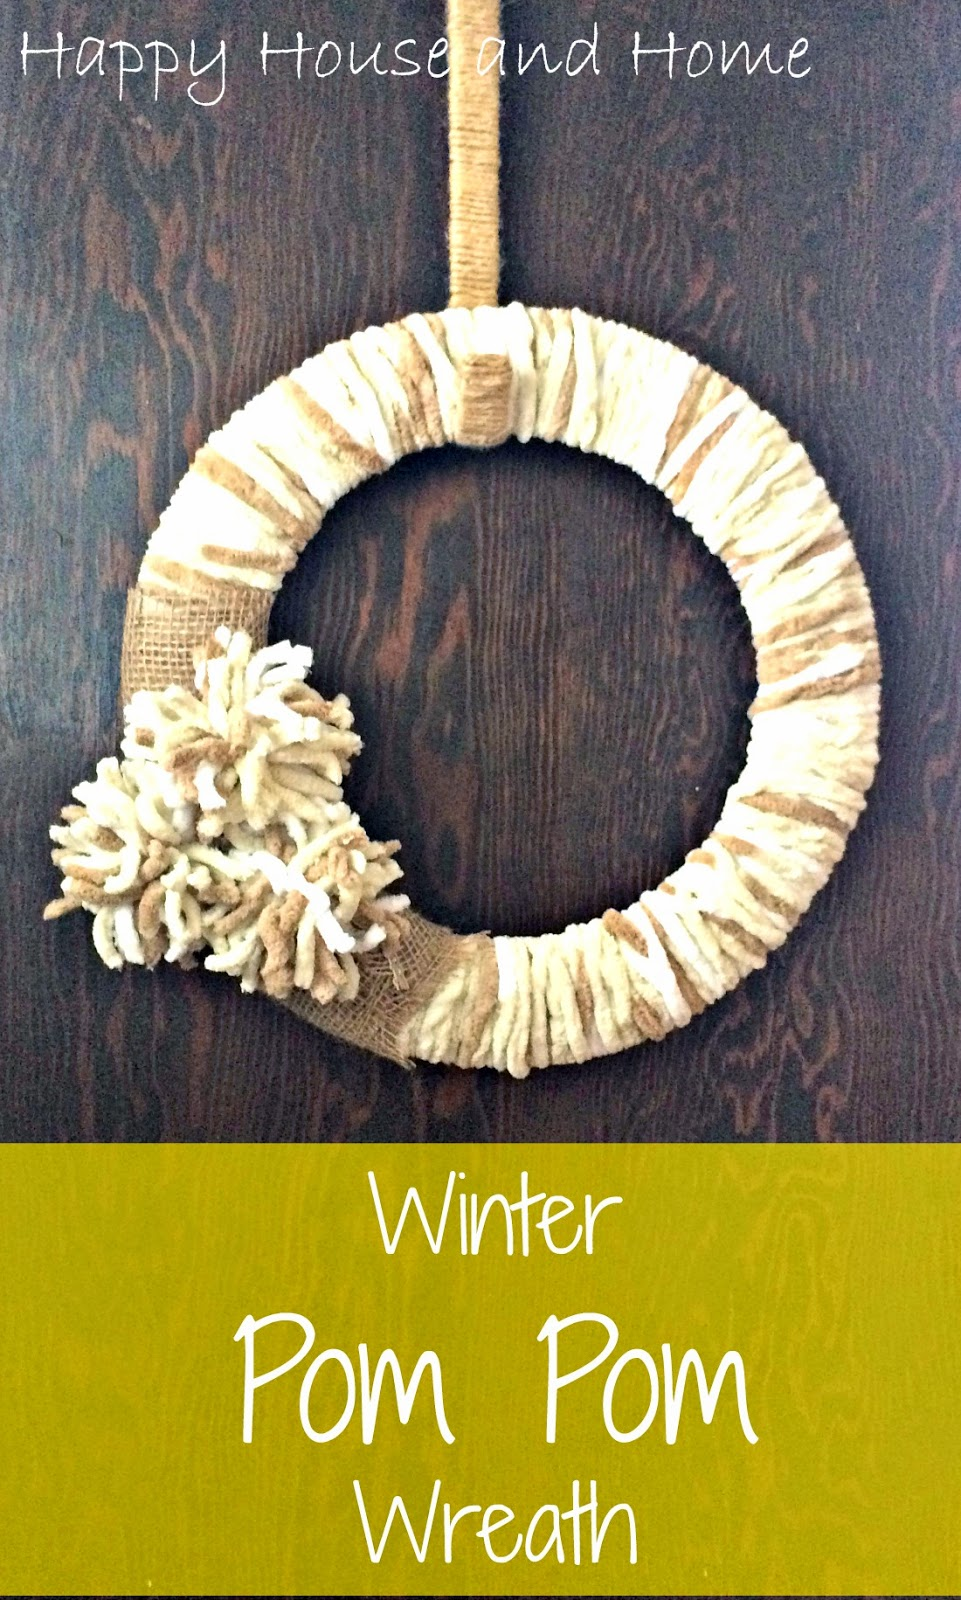 Winter wreath, Pom Pom Wreath, Pom Poms, Wreath